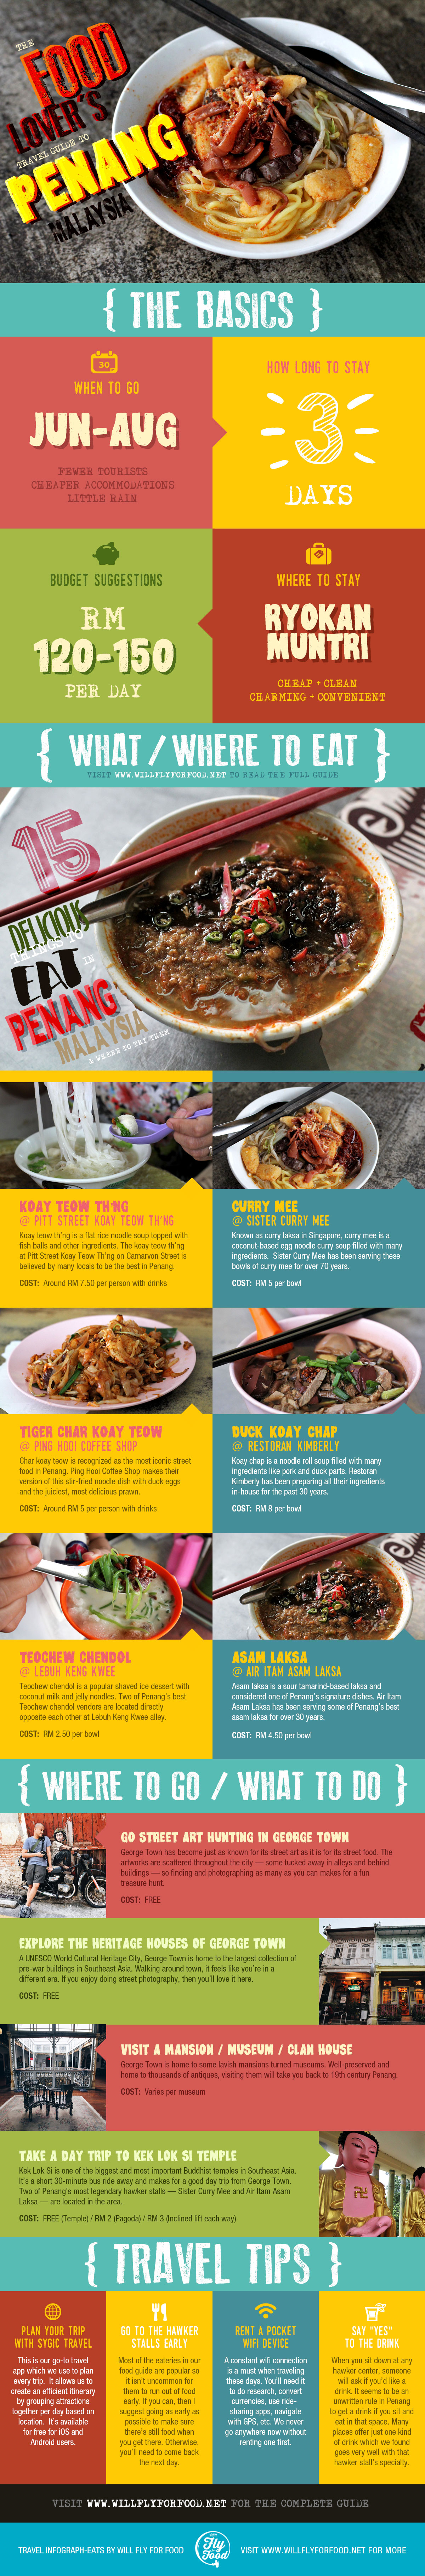 Penang Malaysia (Traveler's Guide) - Infographic